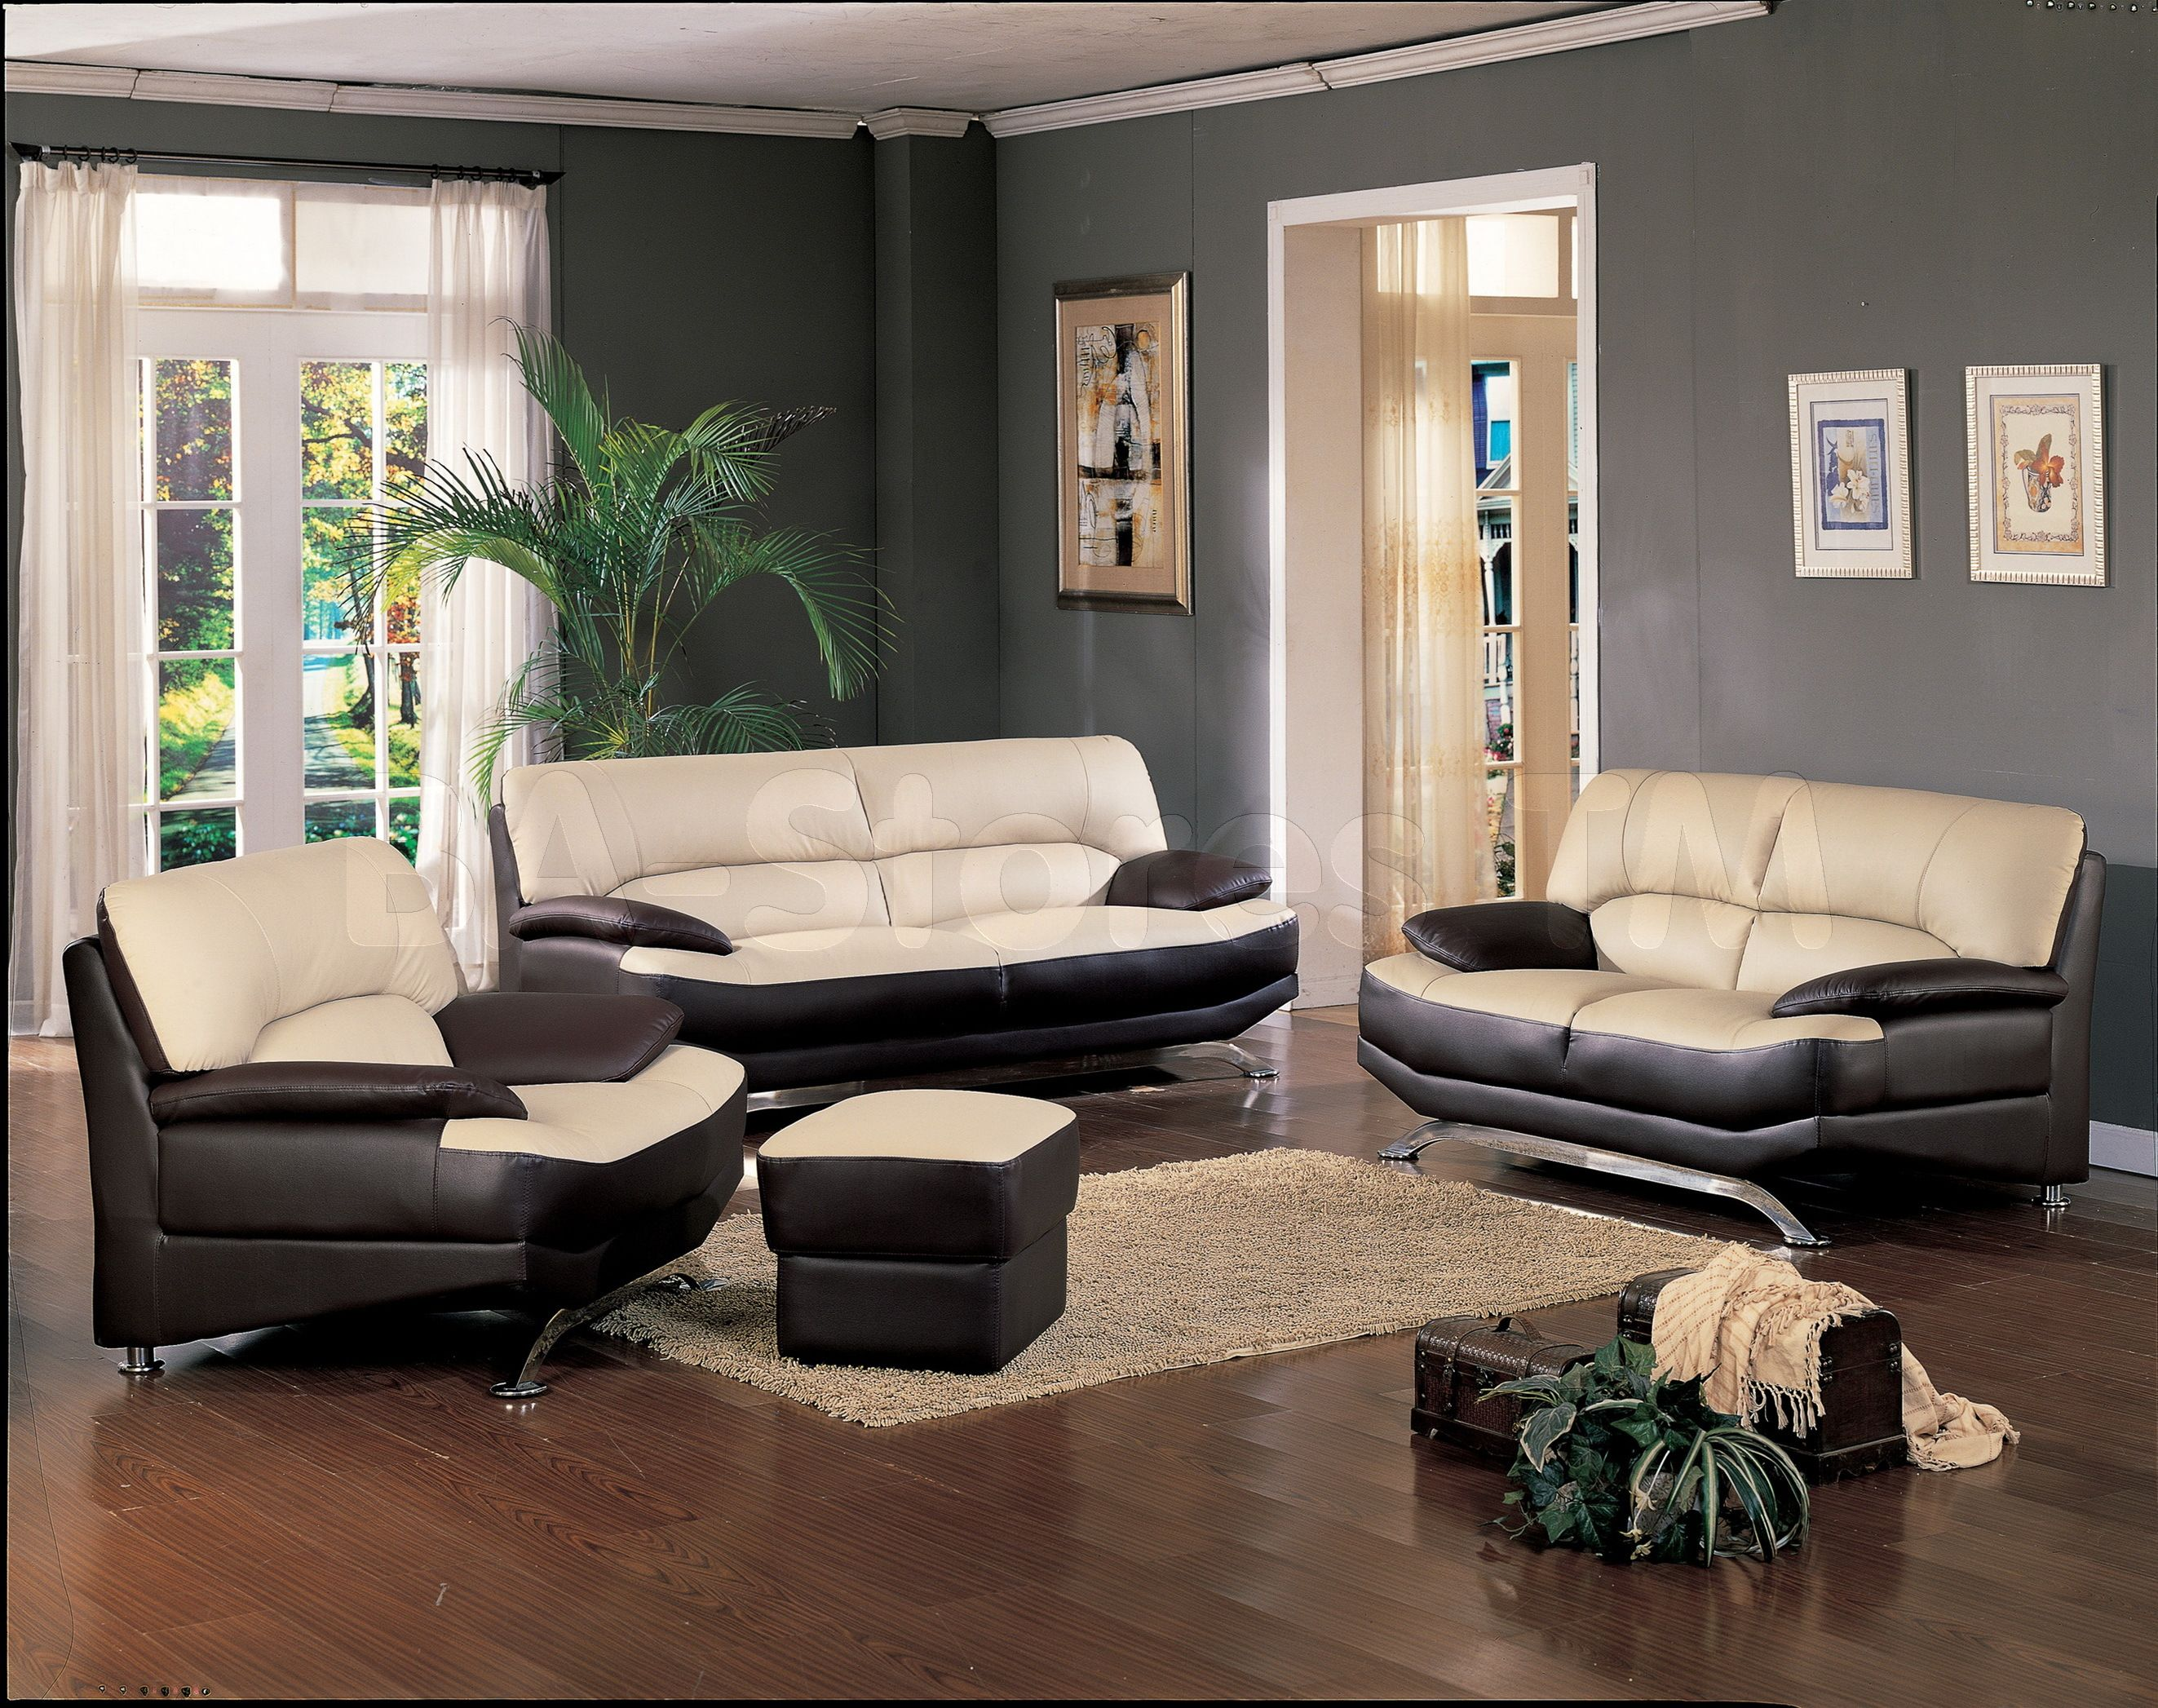 Best Black And Cream Leather Couch On Dark Brown Wooden Floor 400 x 300